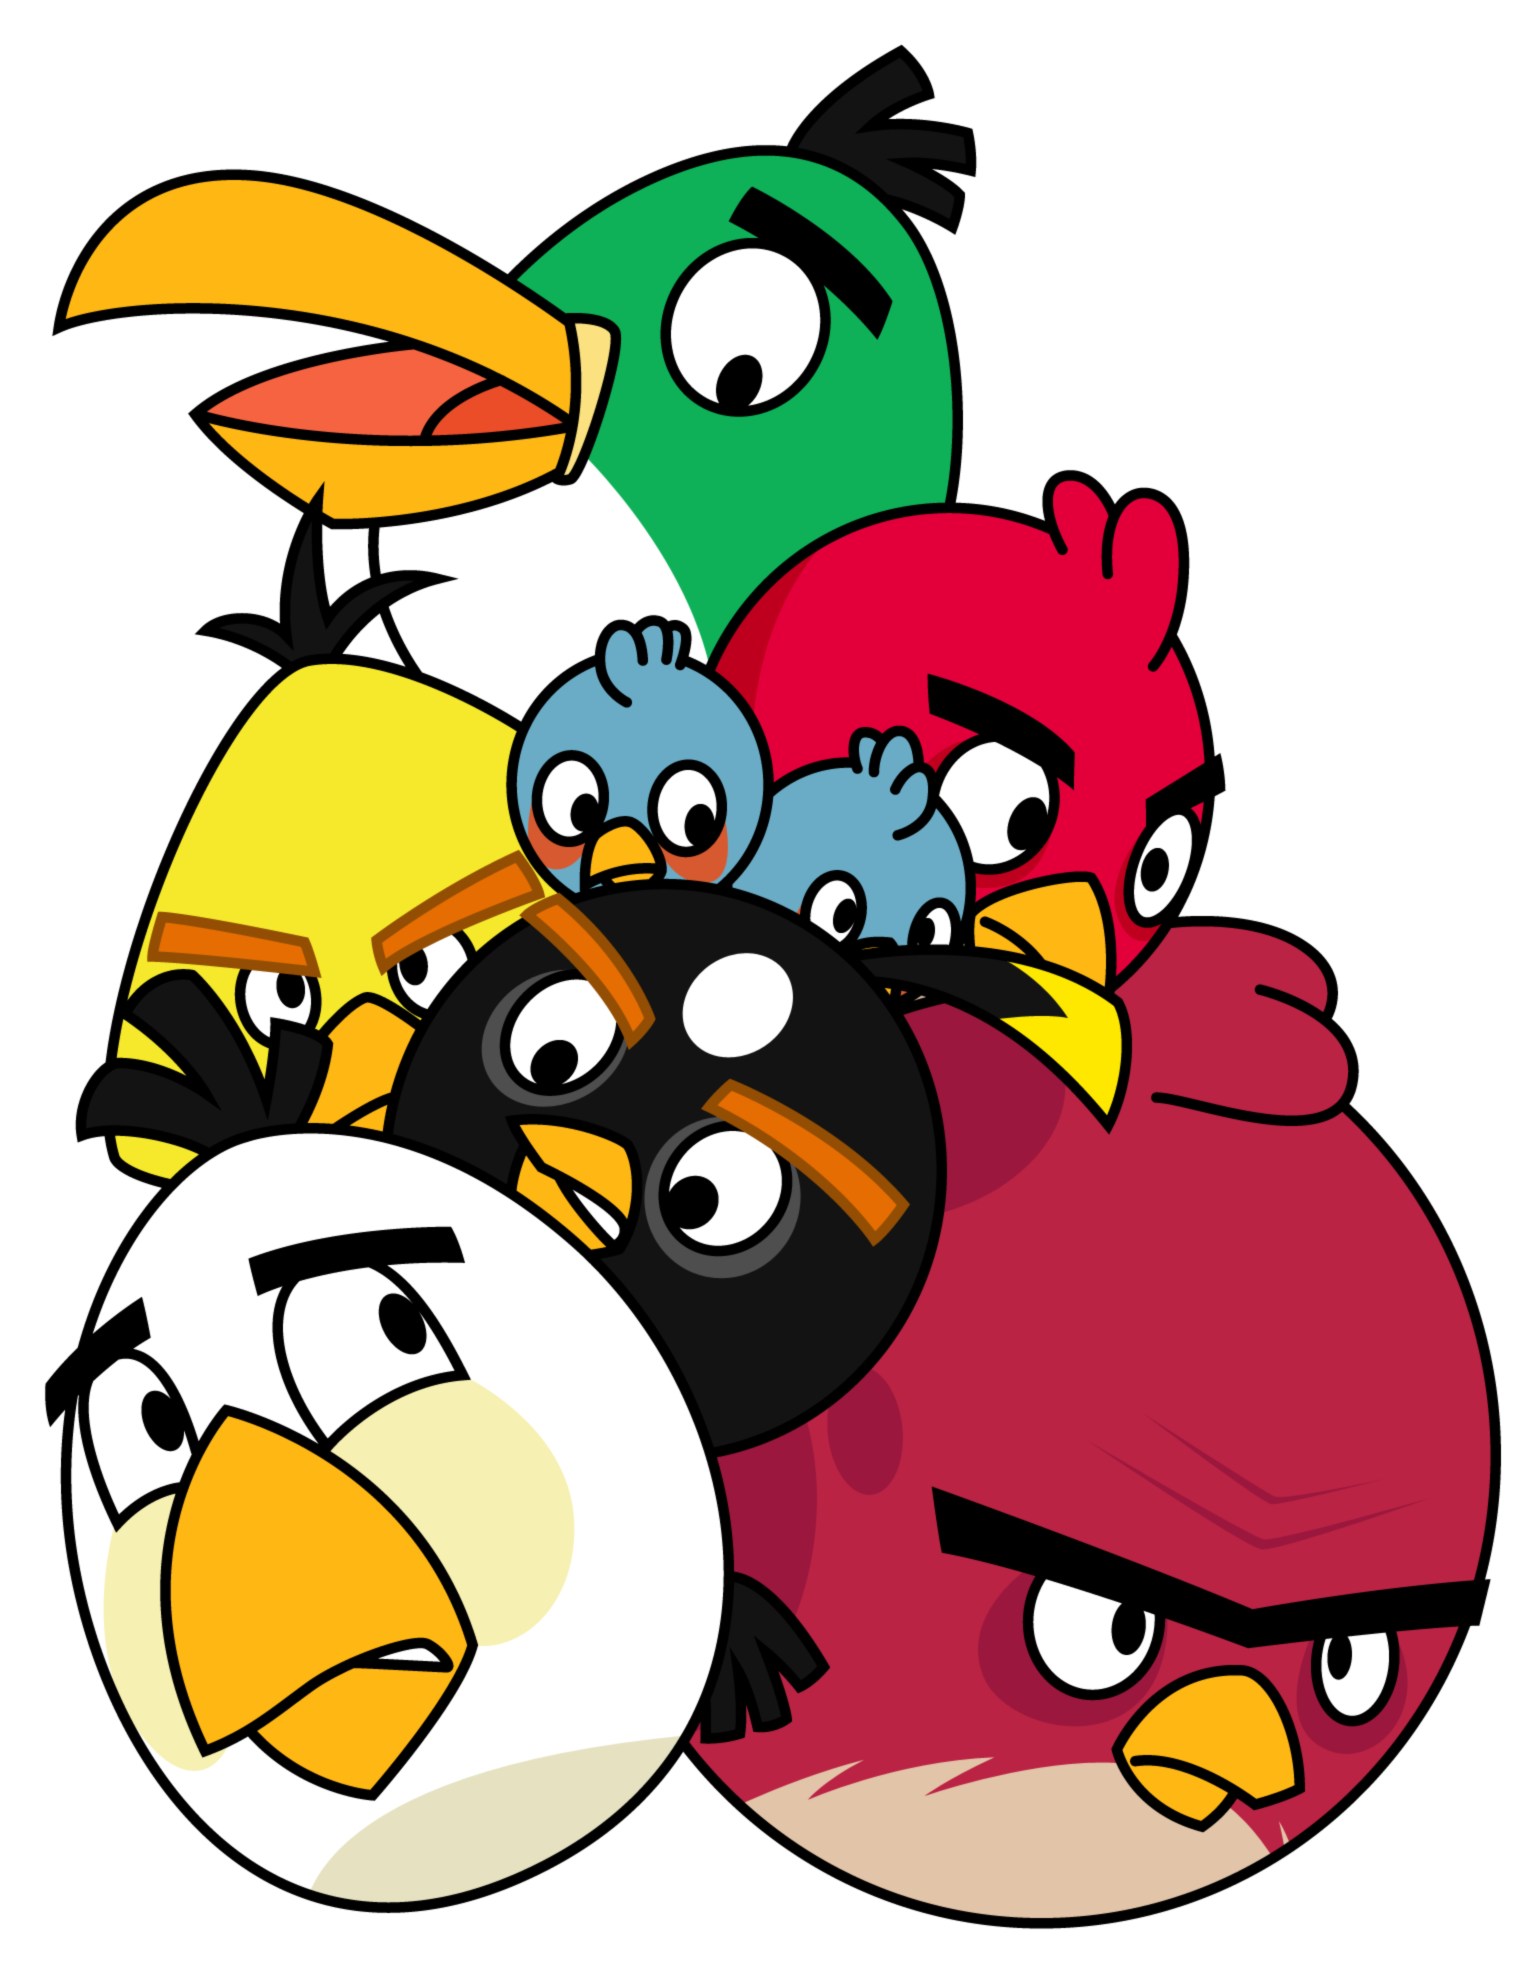 Pile Of Angry Birds By Gav Impdeviantart